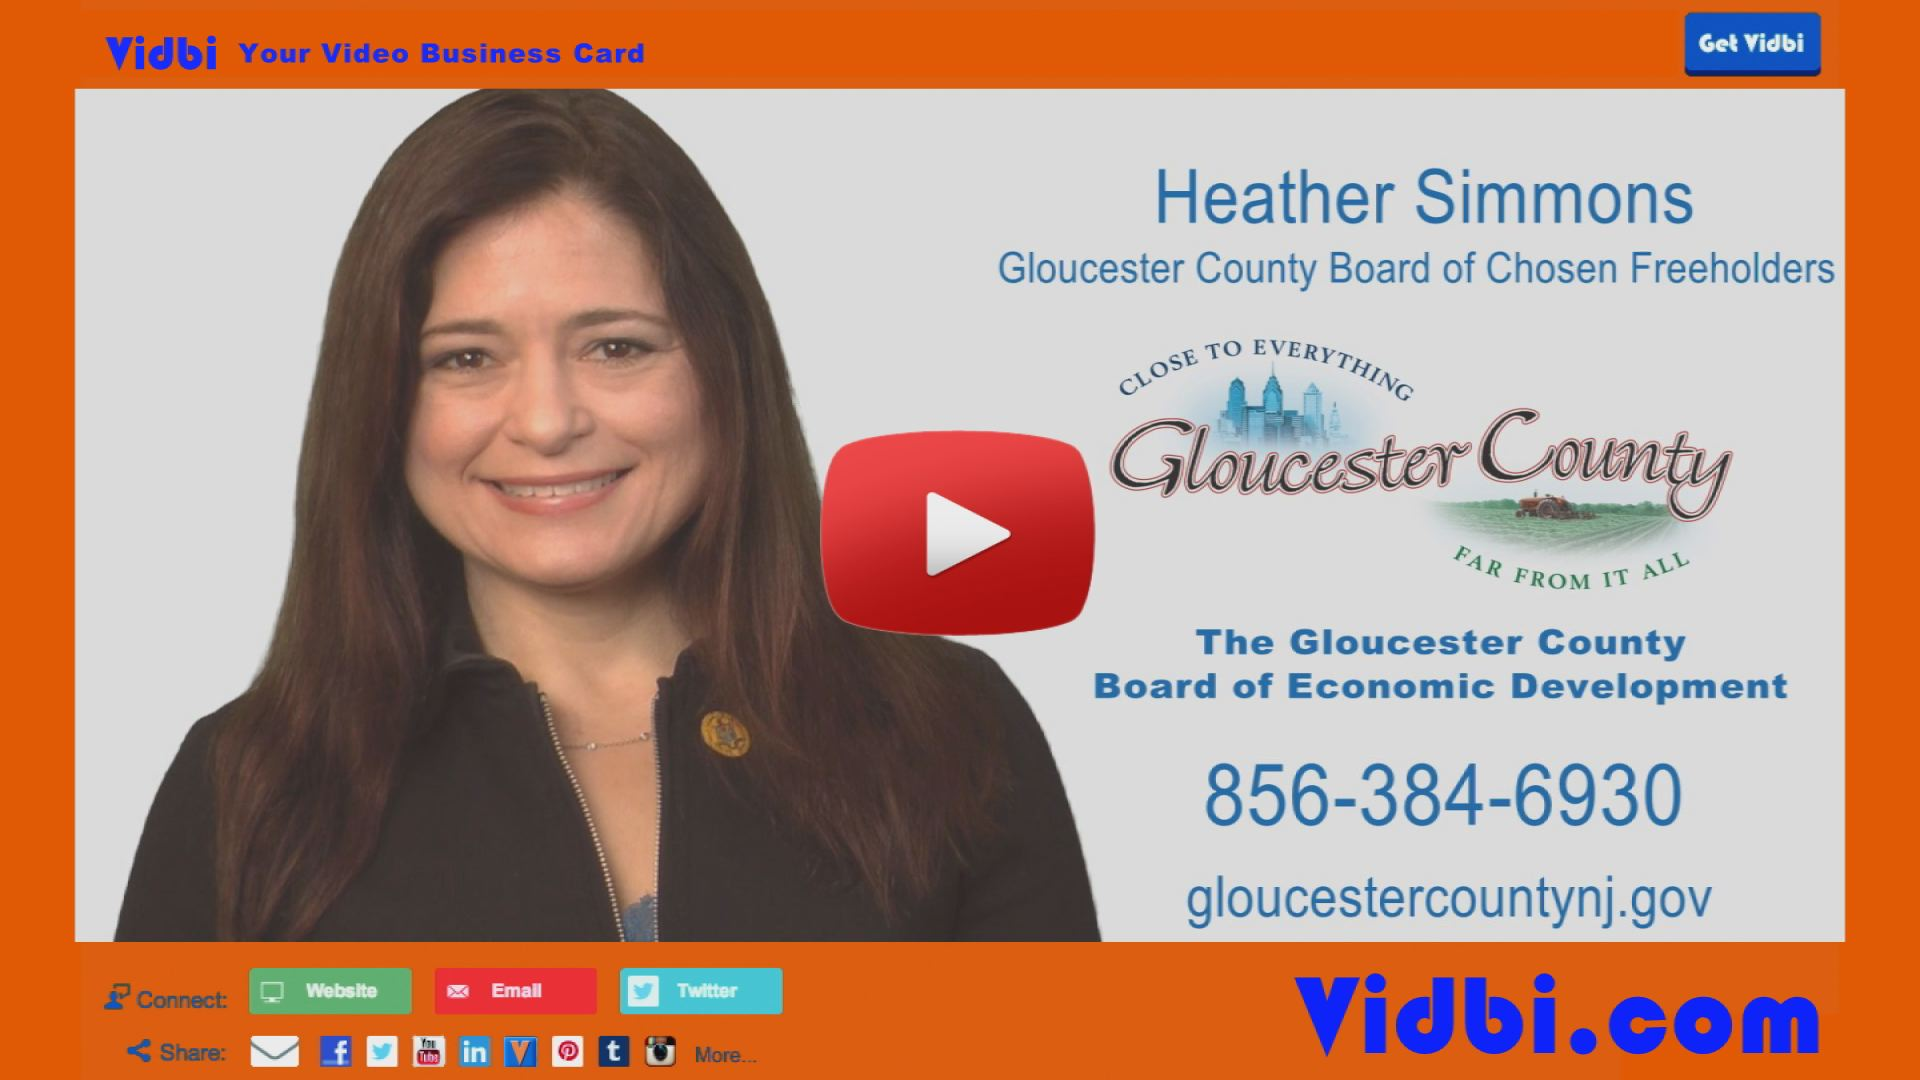 Heather Simmons - Gloucester County Board of Chosen Freeholders